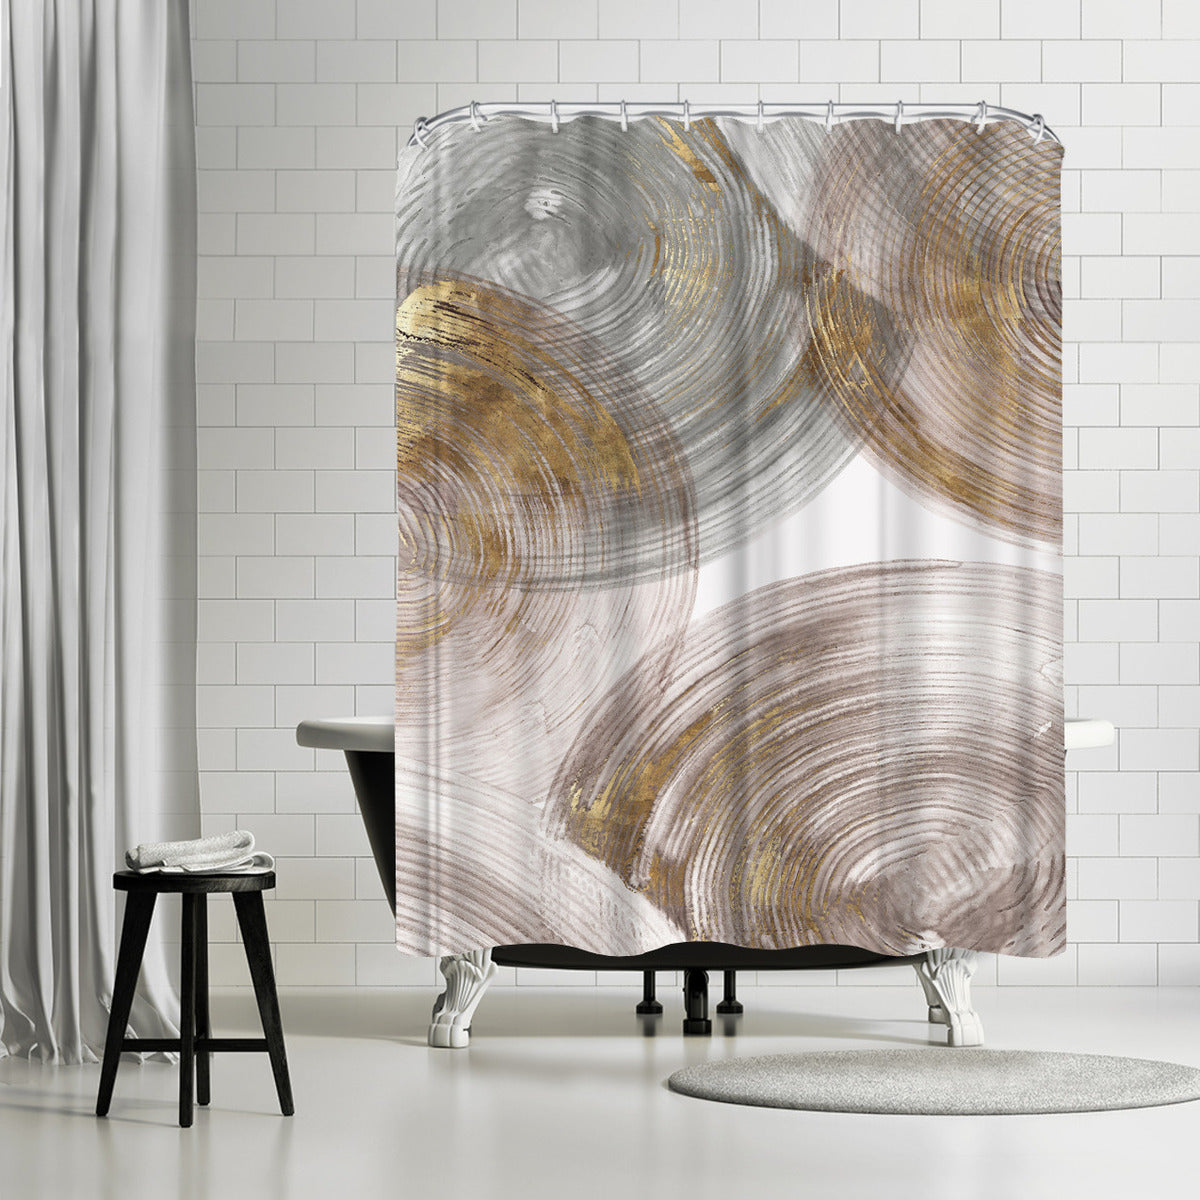 Spiral Rings Ii by PI Creative Art Shower Curtain - Shower Curtain - Americanflat